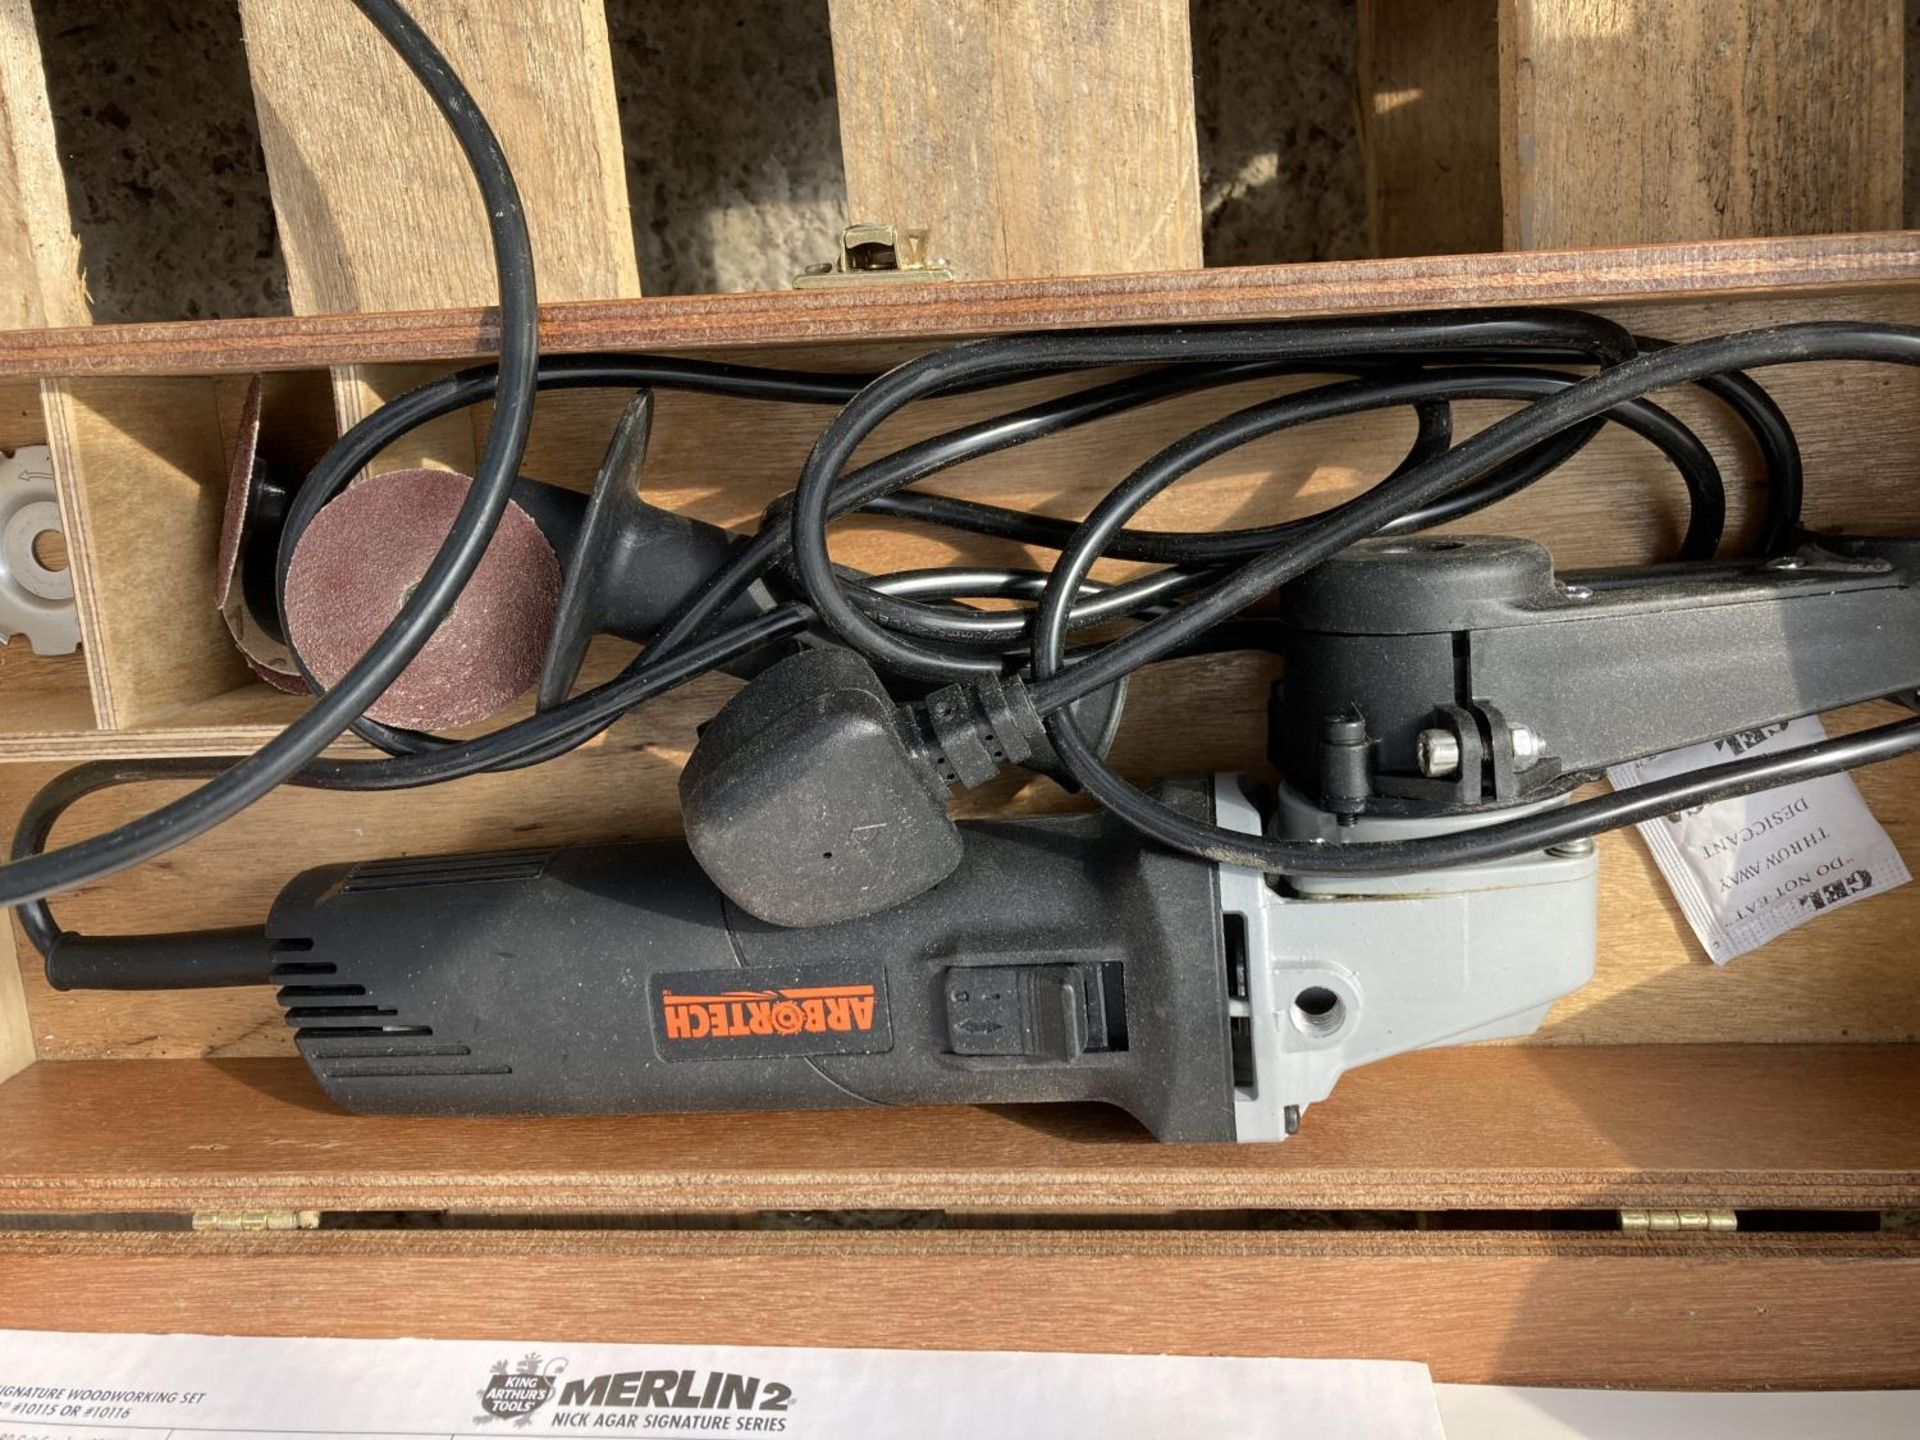 FIVE ITEMS TO INCLUDE A BOSCH GRINDER, ARBORTECH SANDER, PARKSIDE GRINDER, MERLIN SANDER AND A - Image 4 of 7